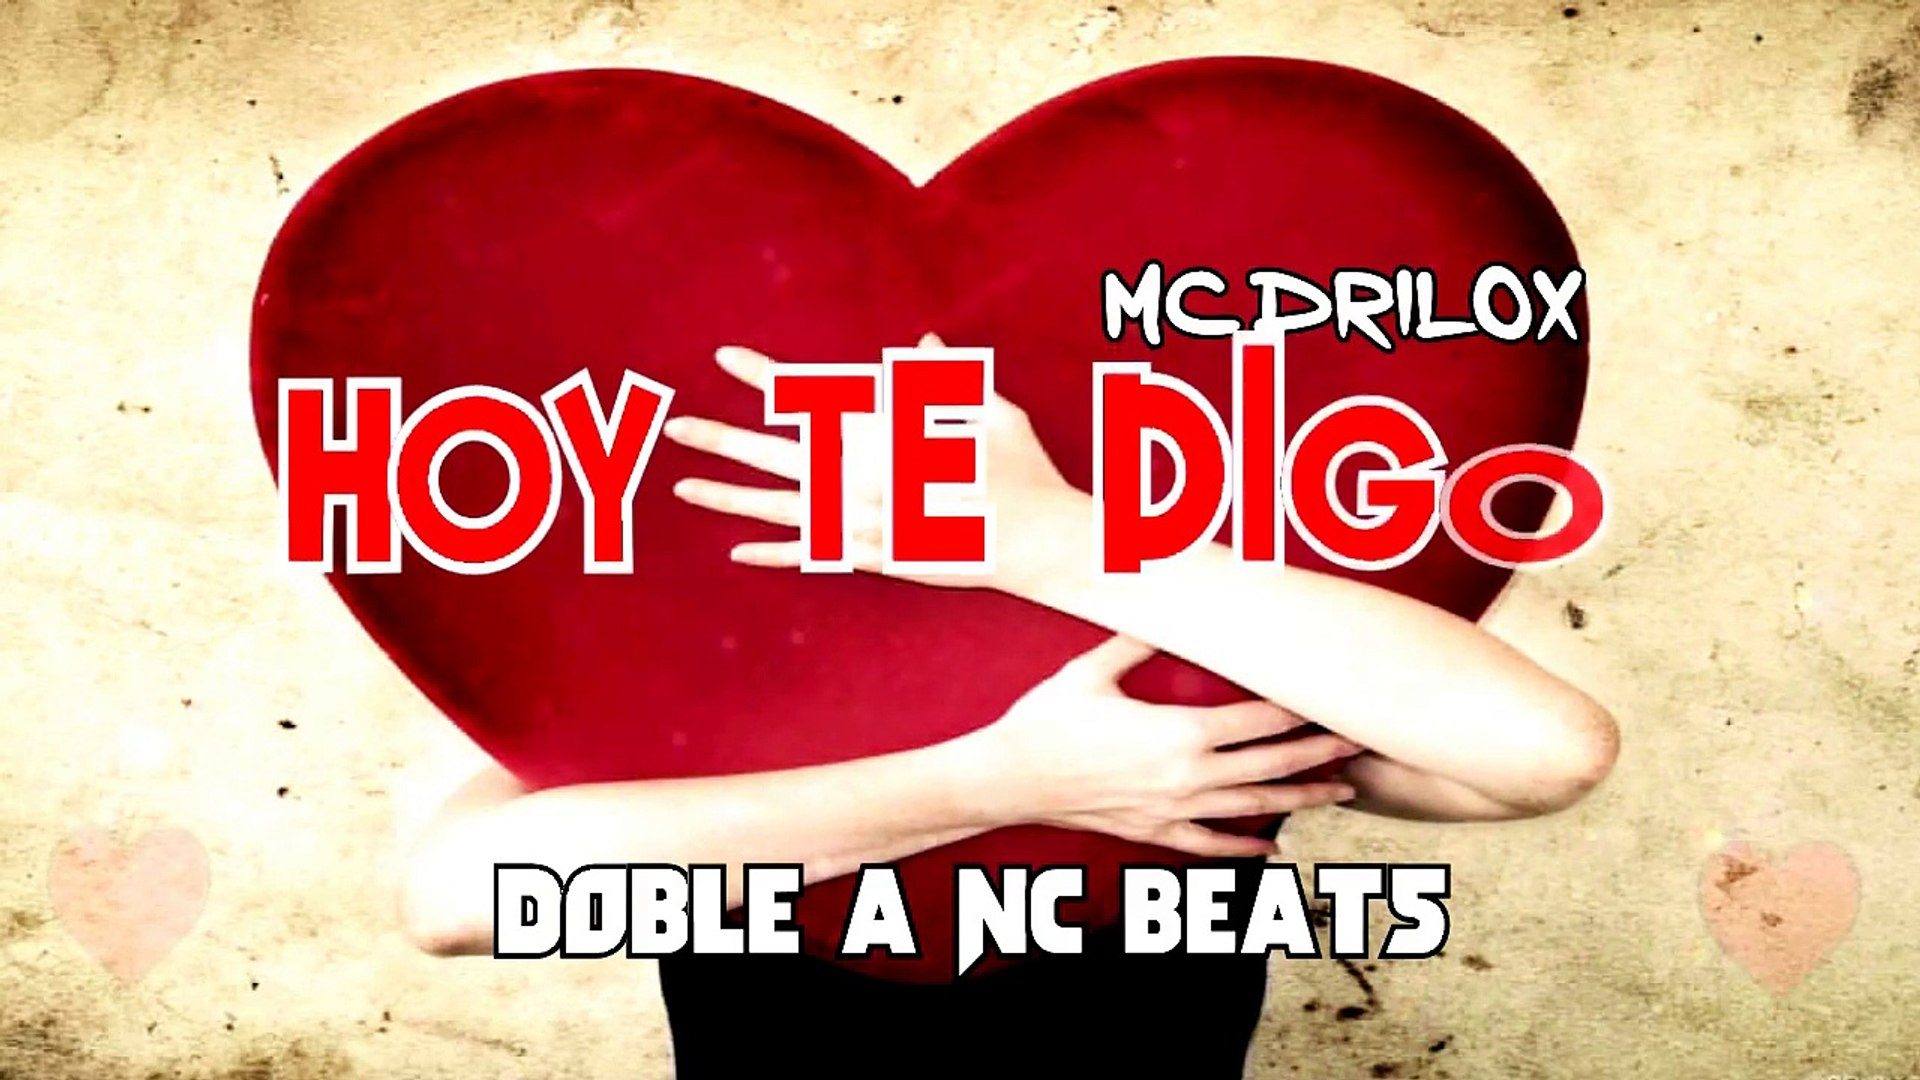 Hoy te digo   Mc Drilox Ft. E-Lee Mc [Doble A Nc Beats]